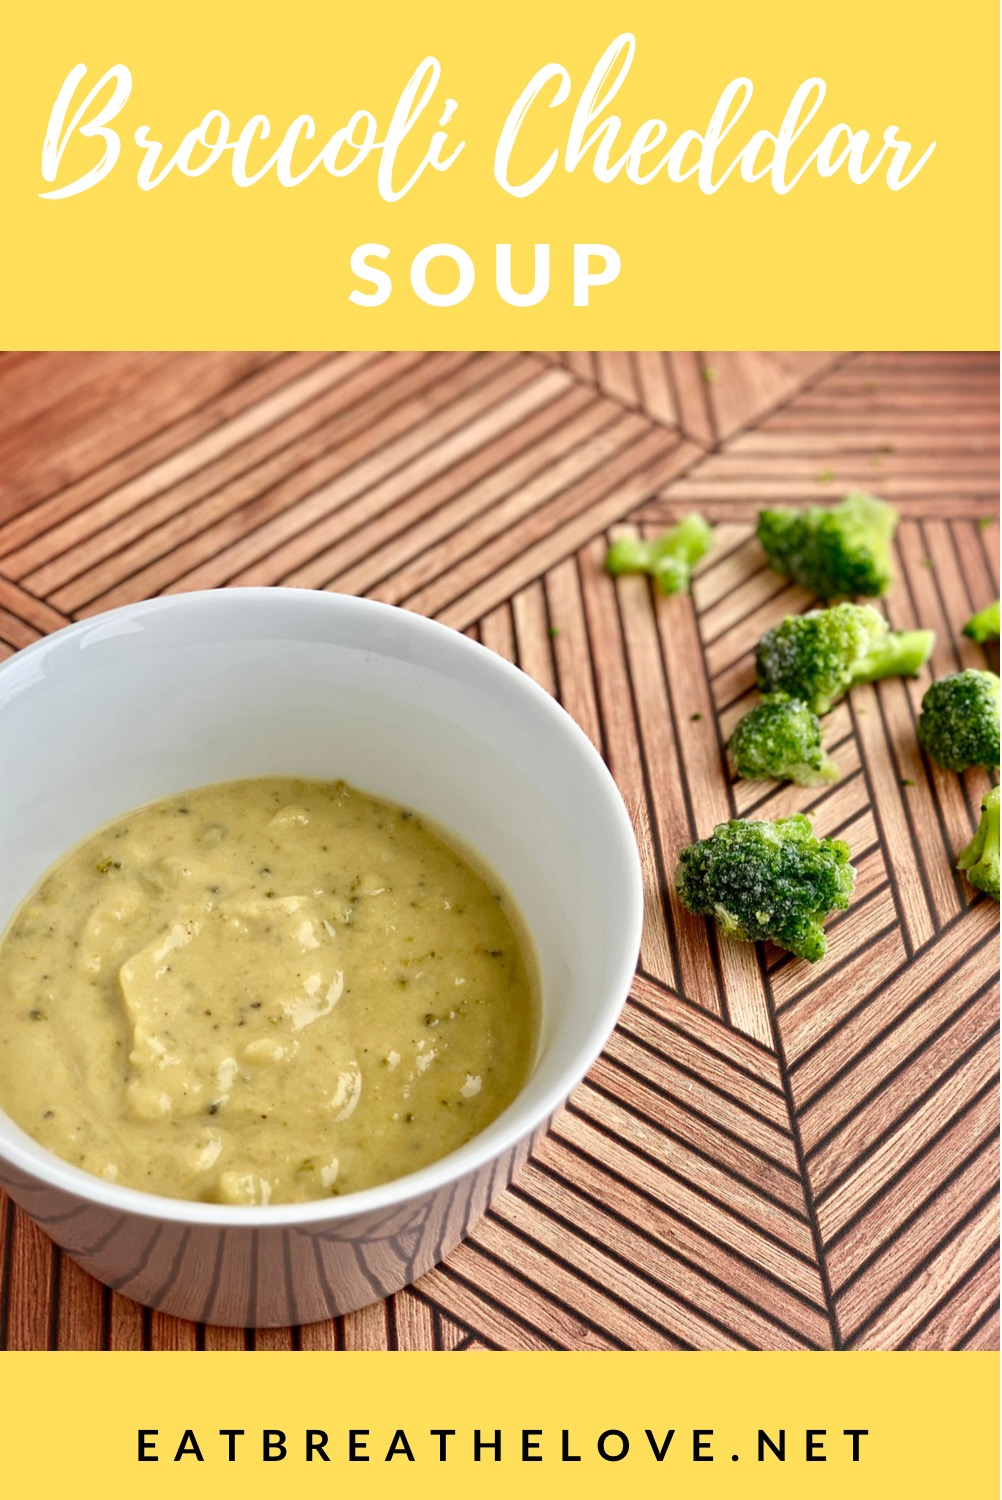 An image of a bowl of broccoli cheddar soup